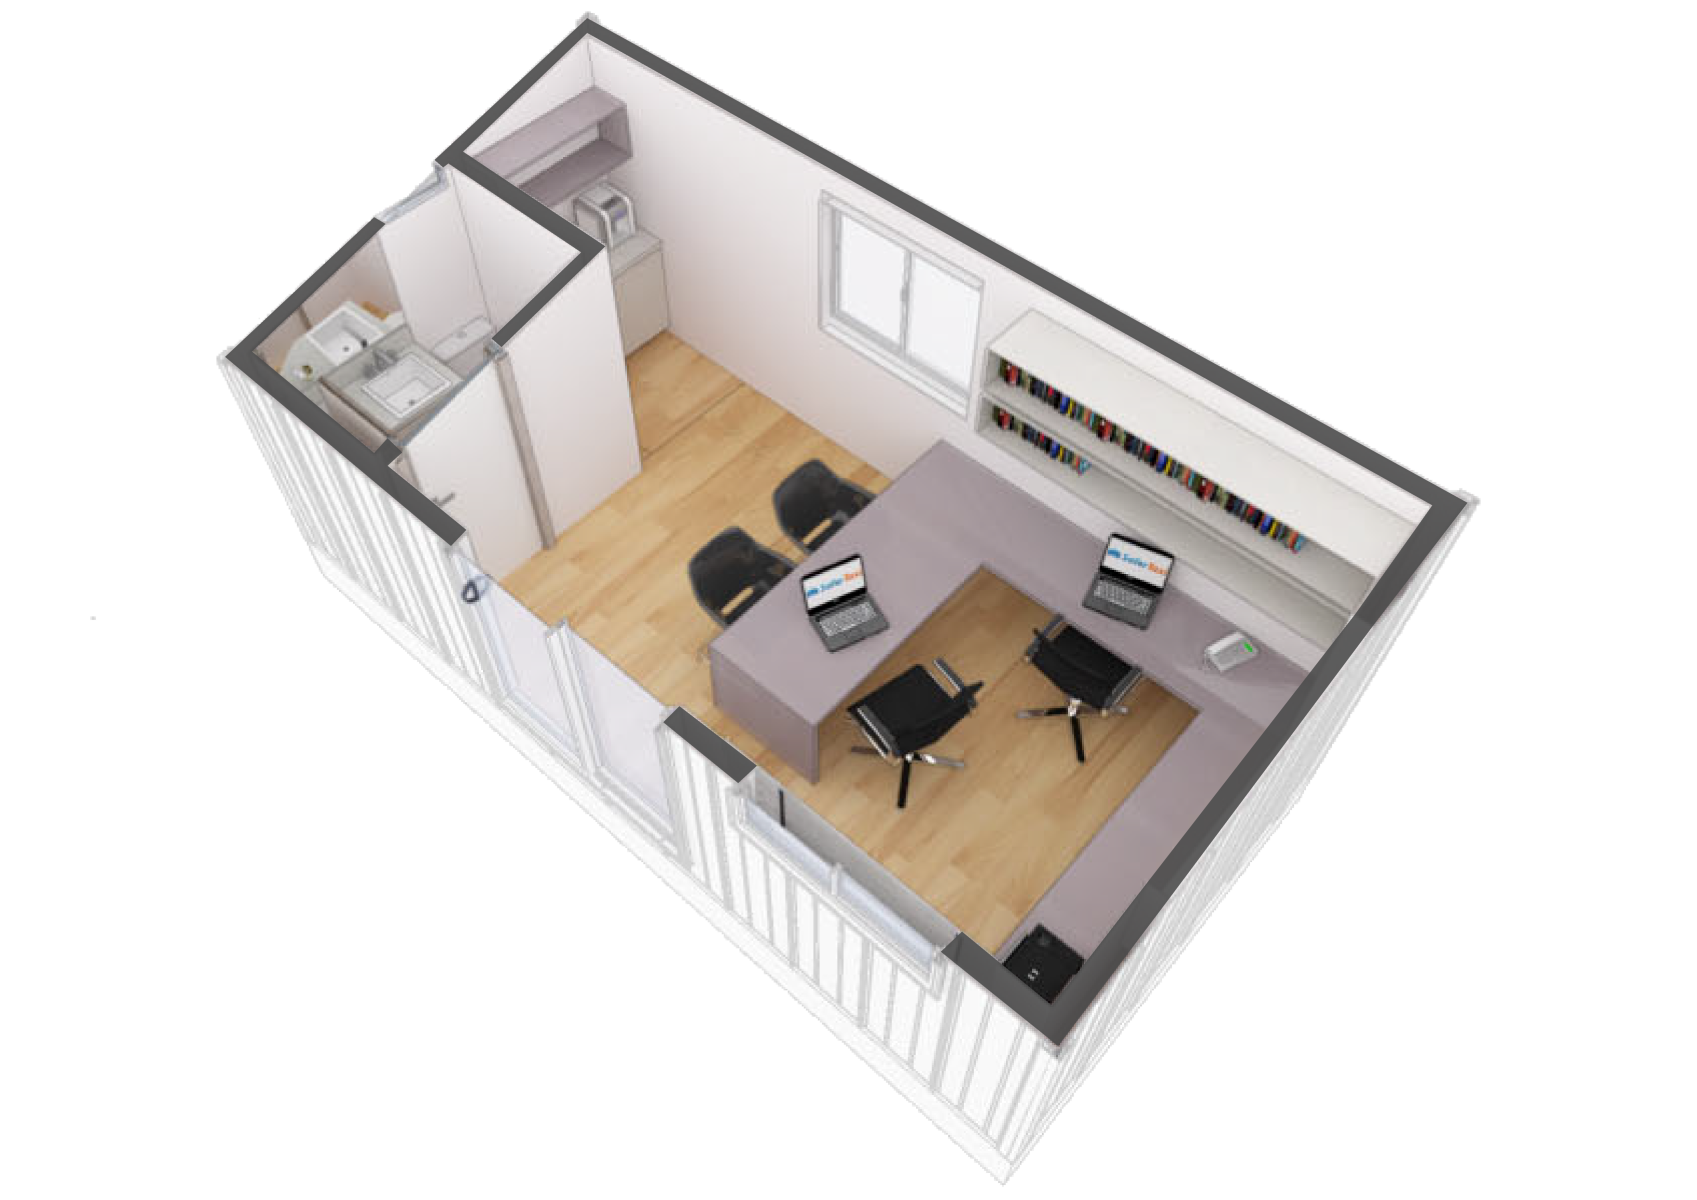 Mehta home office pjxica